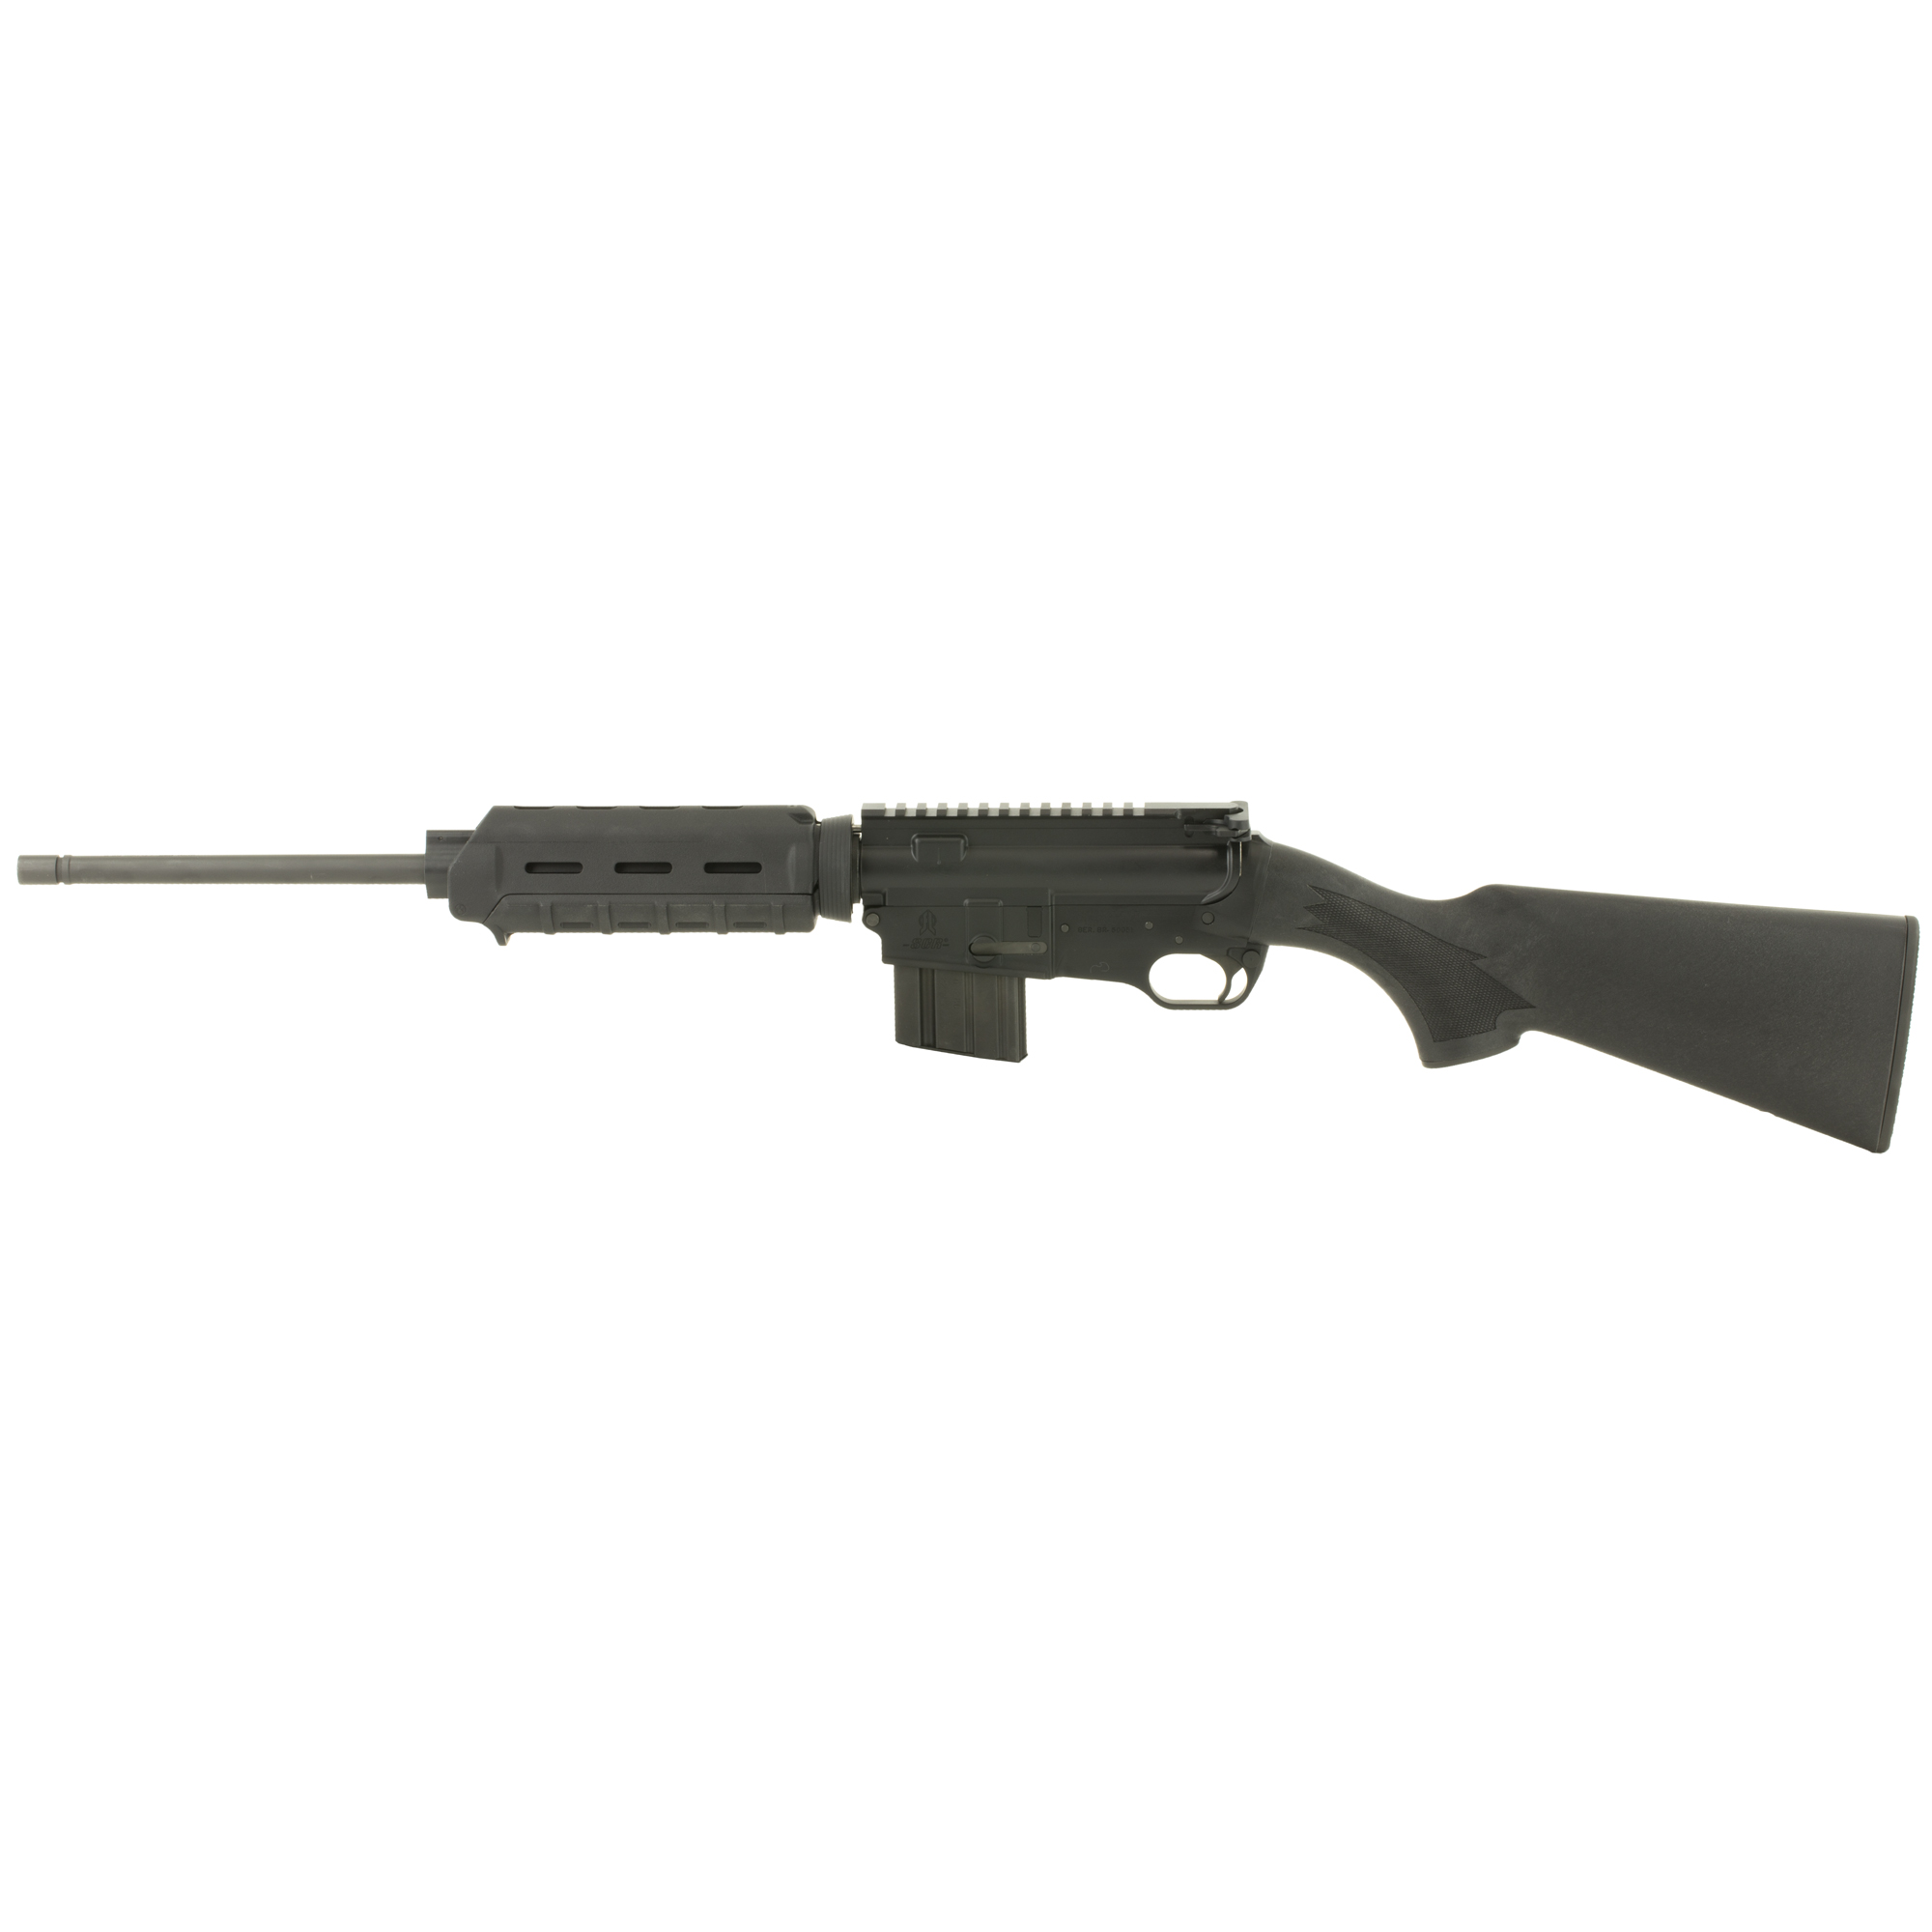 "The FightLite SCR-002 features a high-impact synthetic stock"" carbine length Magpul MOE handguard"" 7075-T6 receivers and a 4140 Chromoly barrel."